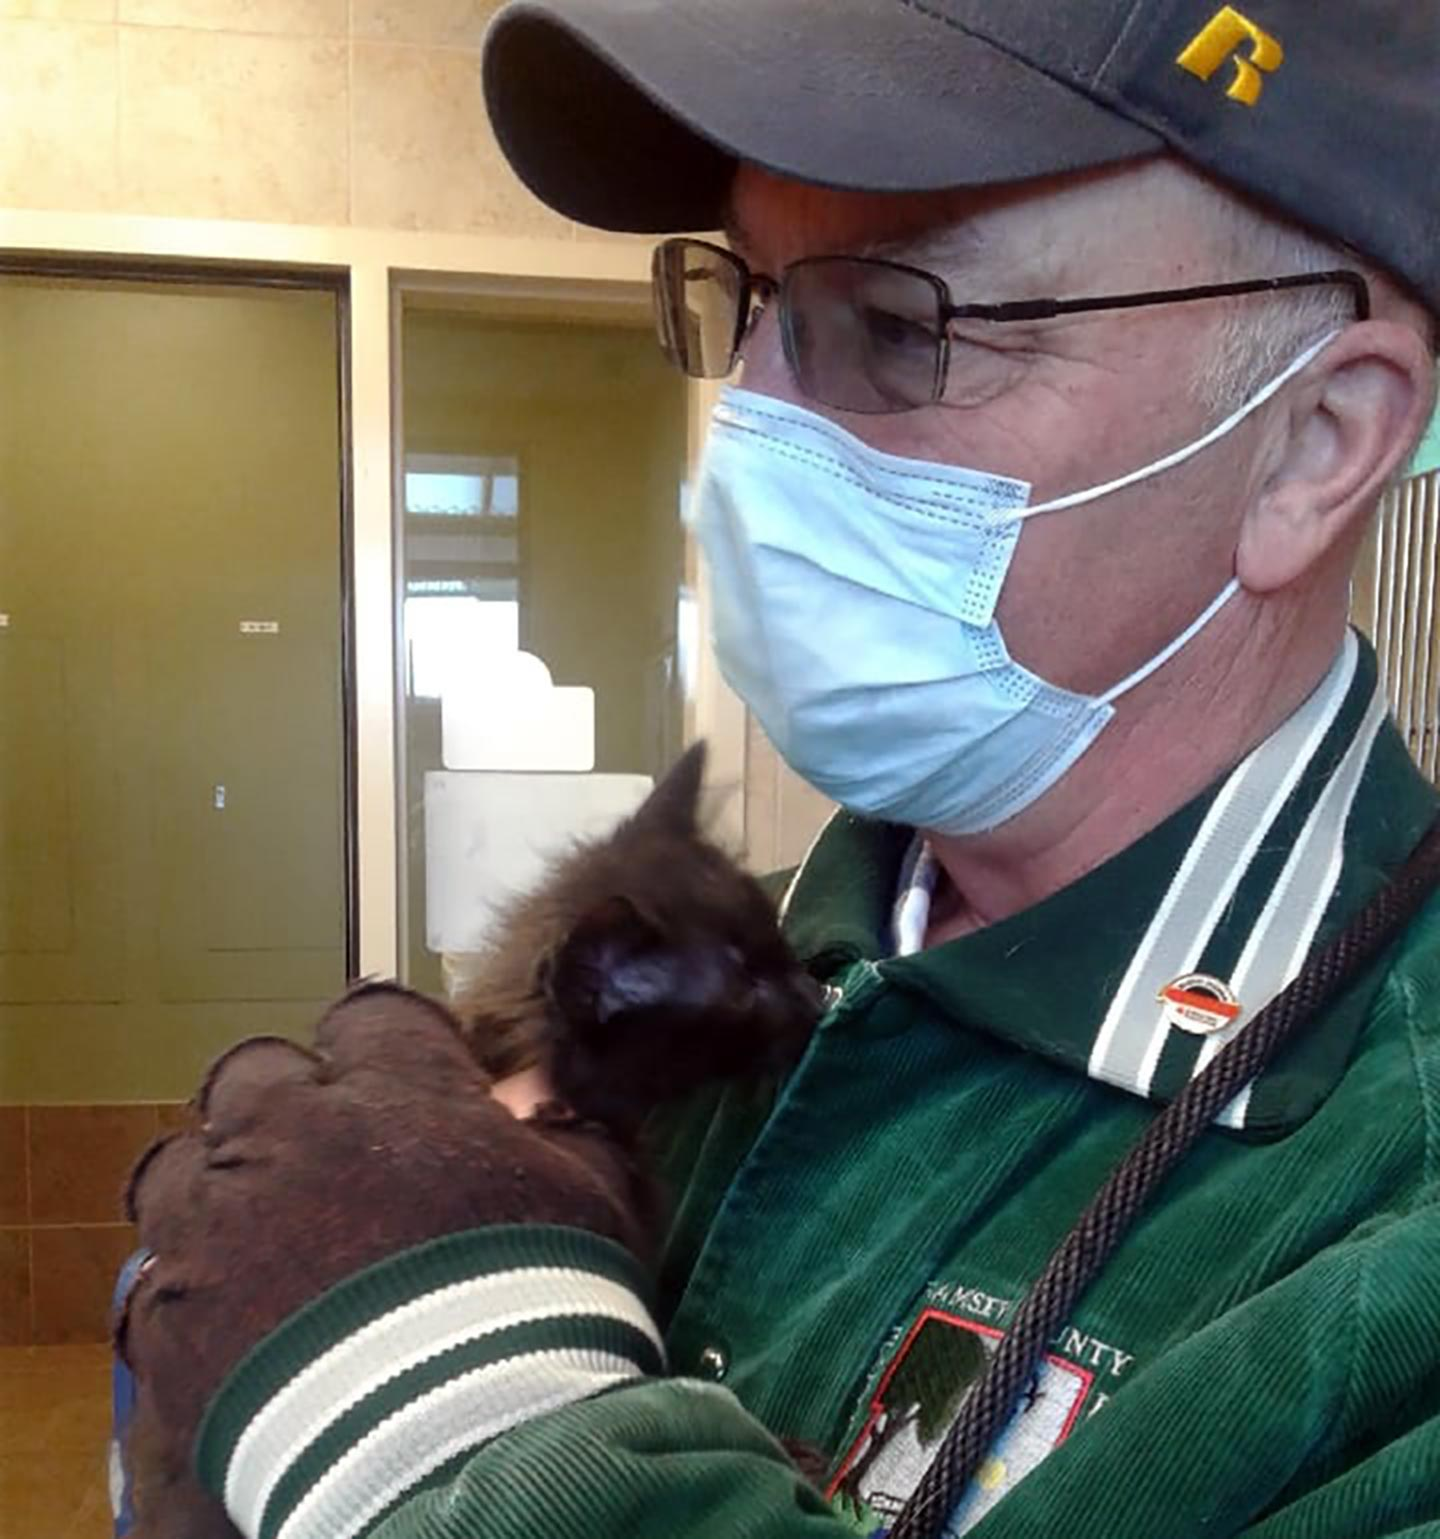 Minnesota: Greg Smith Takes Shelter Pets on Life-Changing Trips